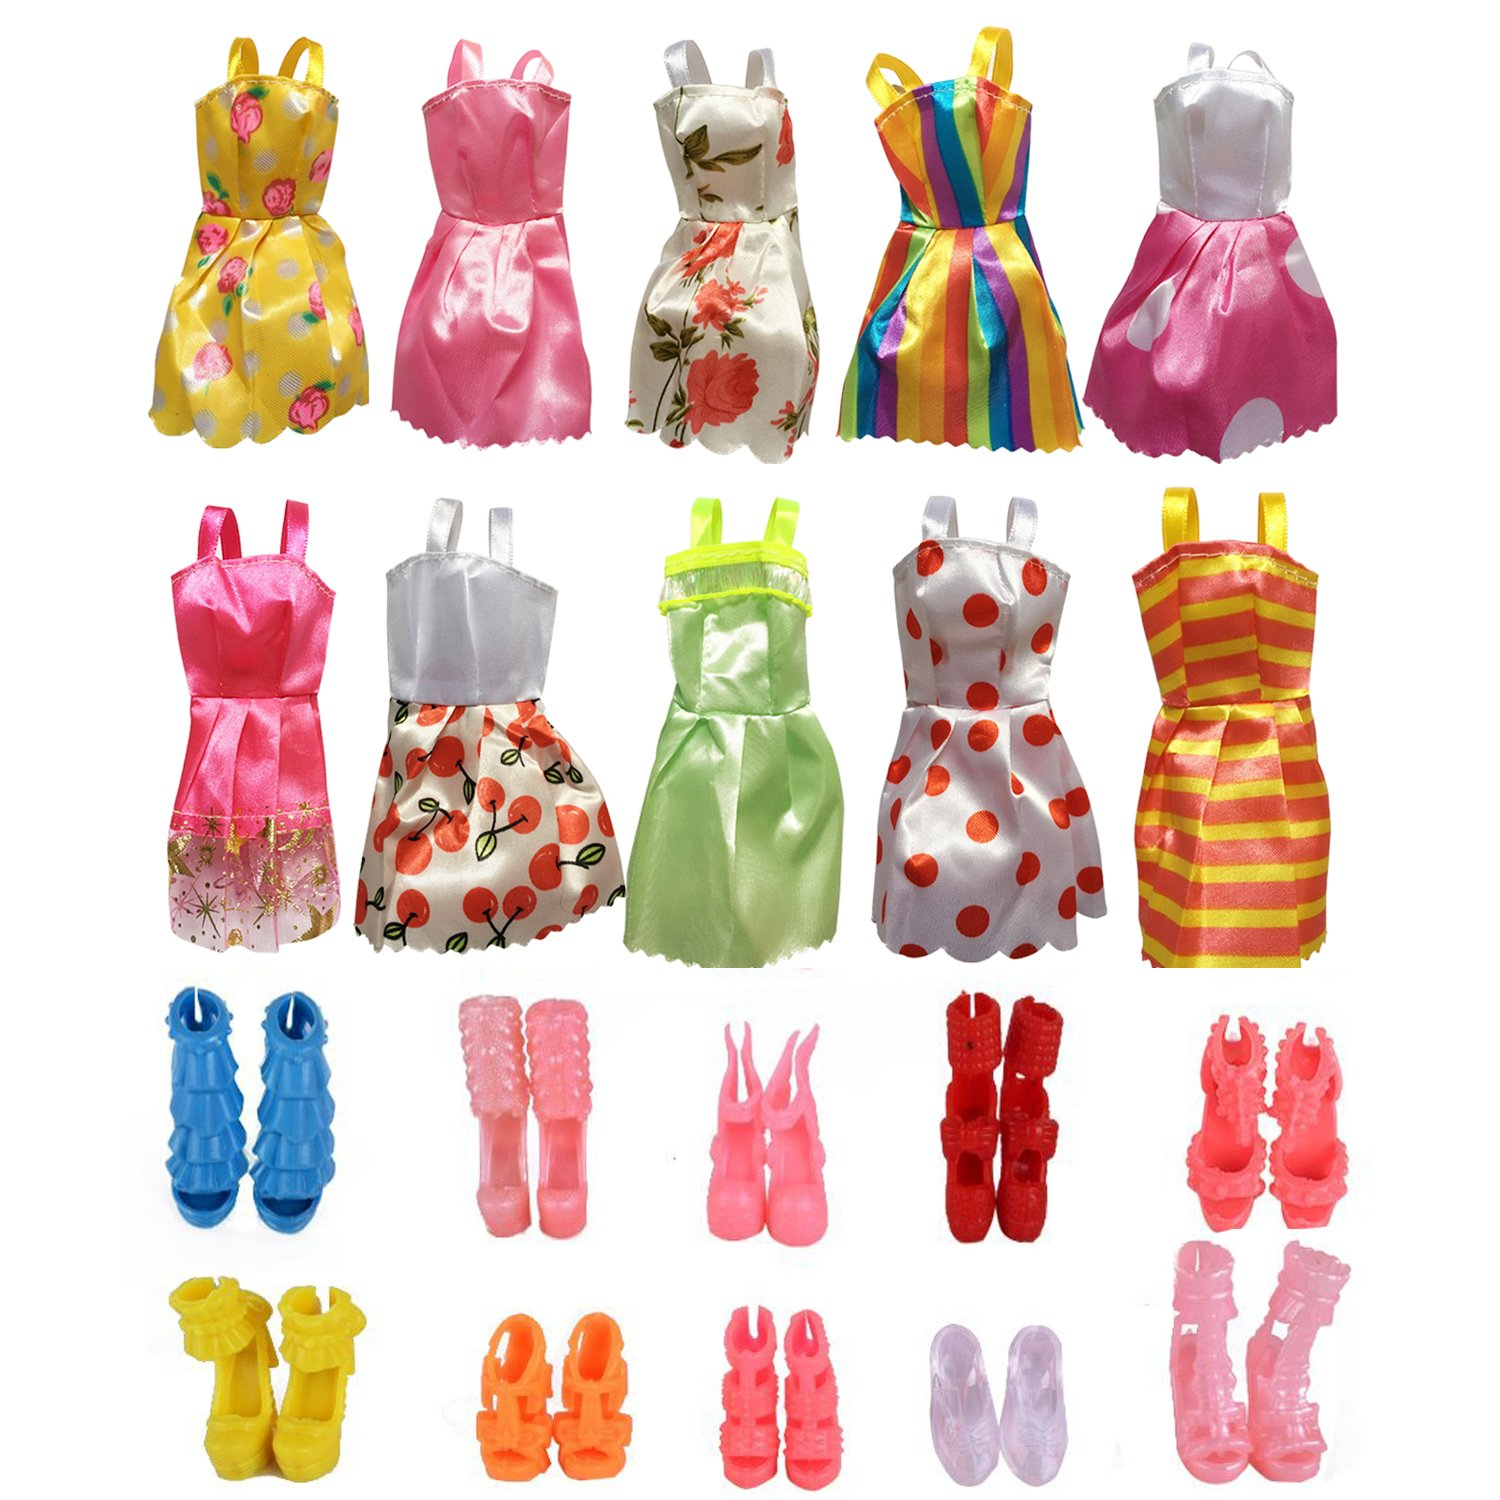 10 Pack Girl Barbie Clothes Doll Dresses Wedding Party Gown Outfits with 10 Pairs Shoes Birthday Gift by SAKUYV